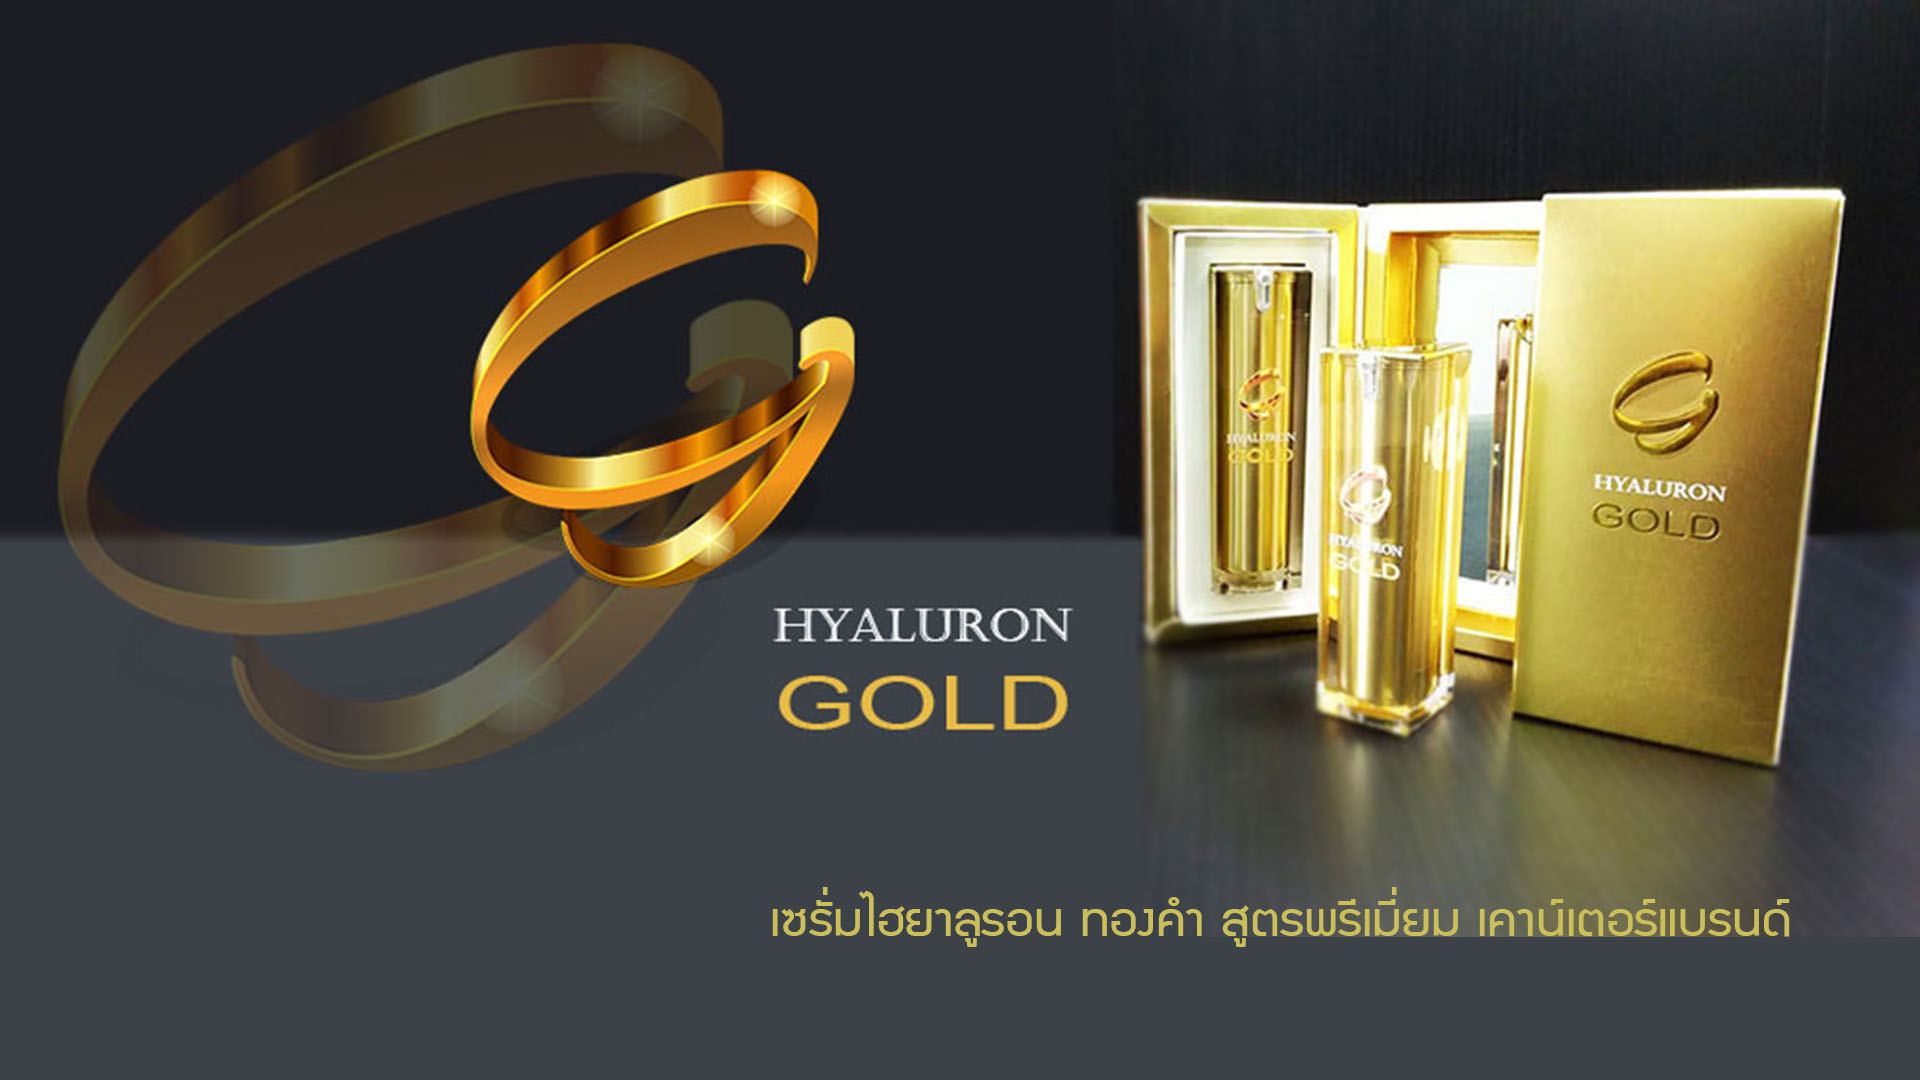 Hyaluron Gold Serum